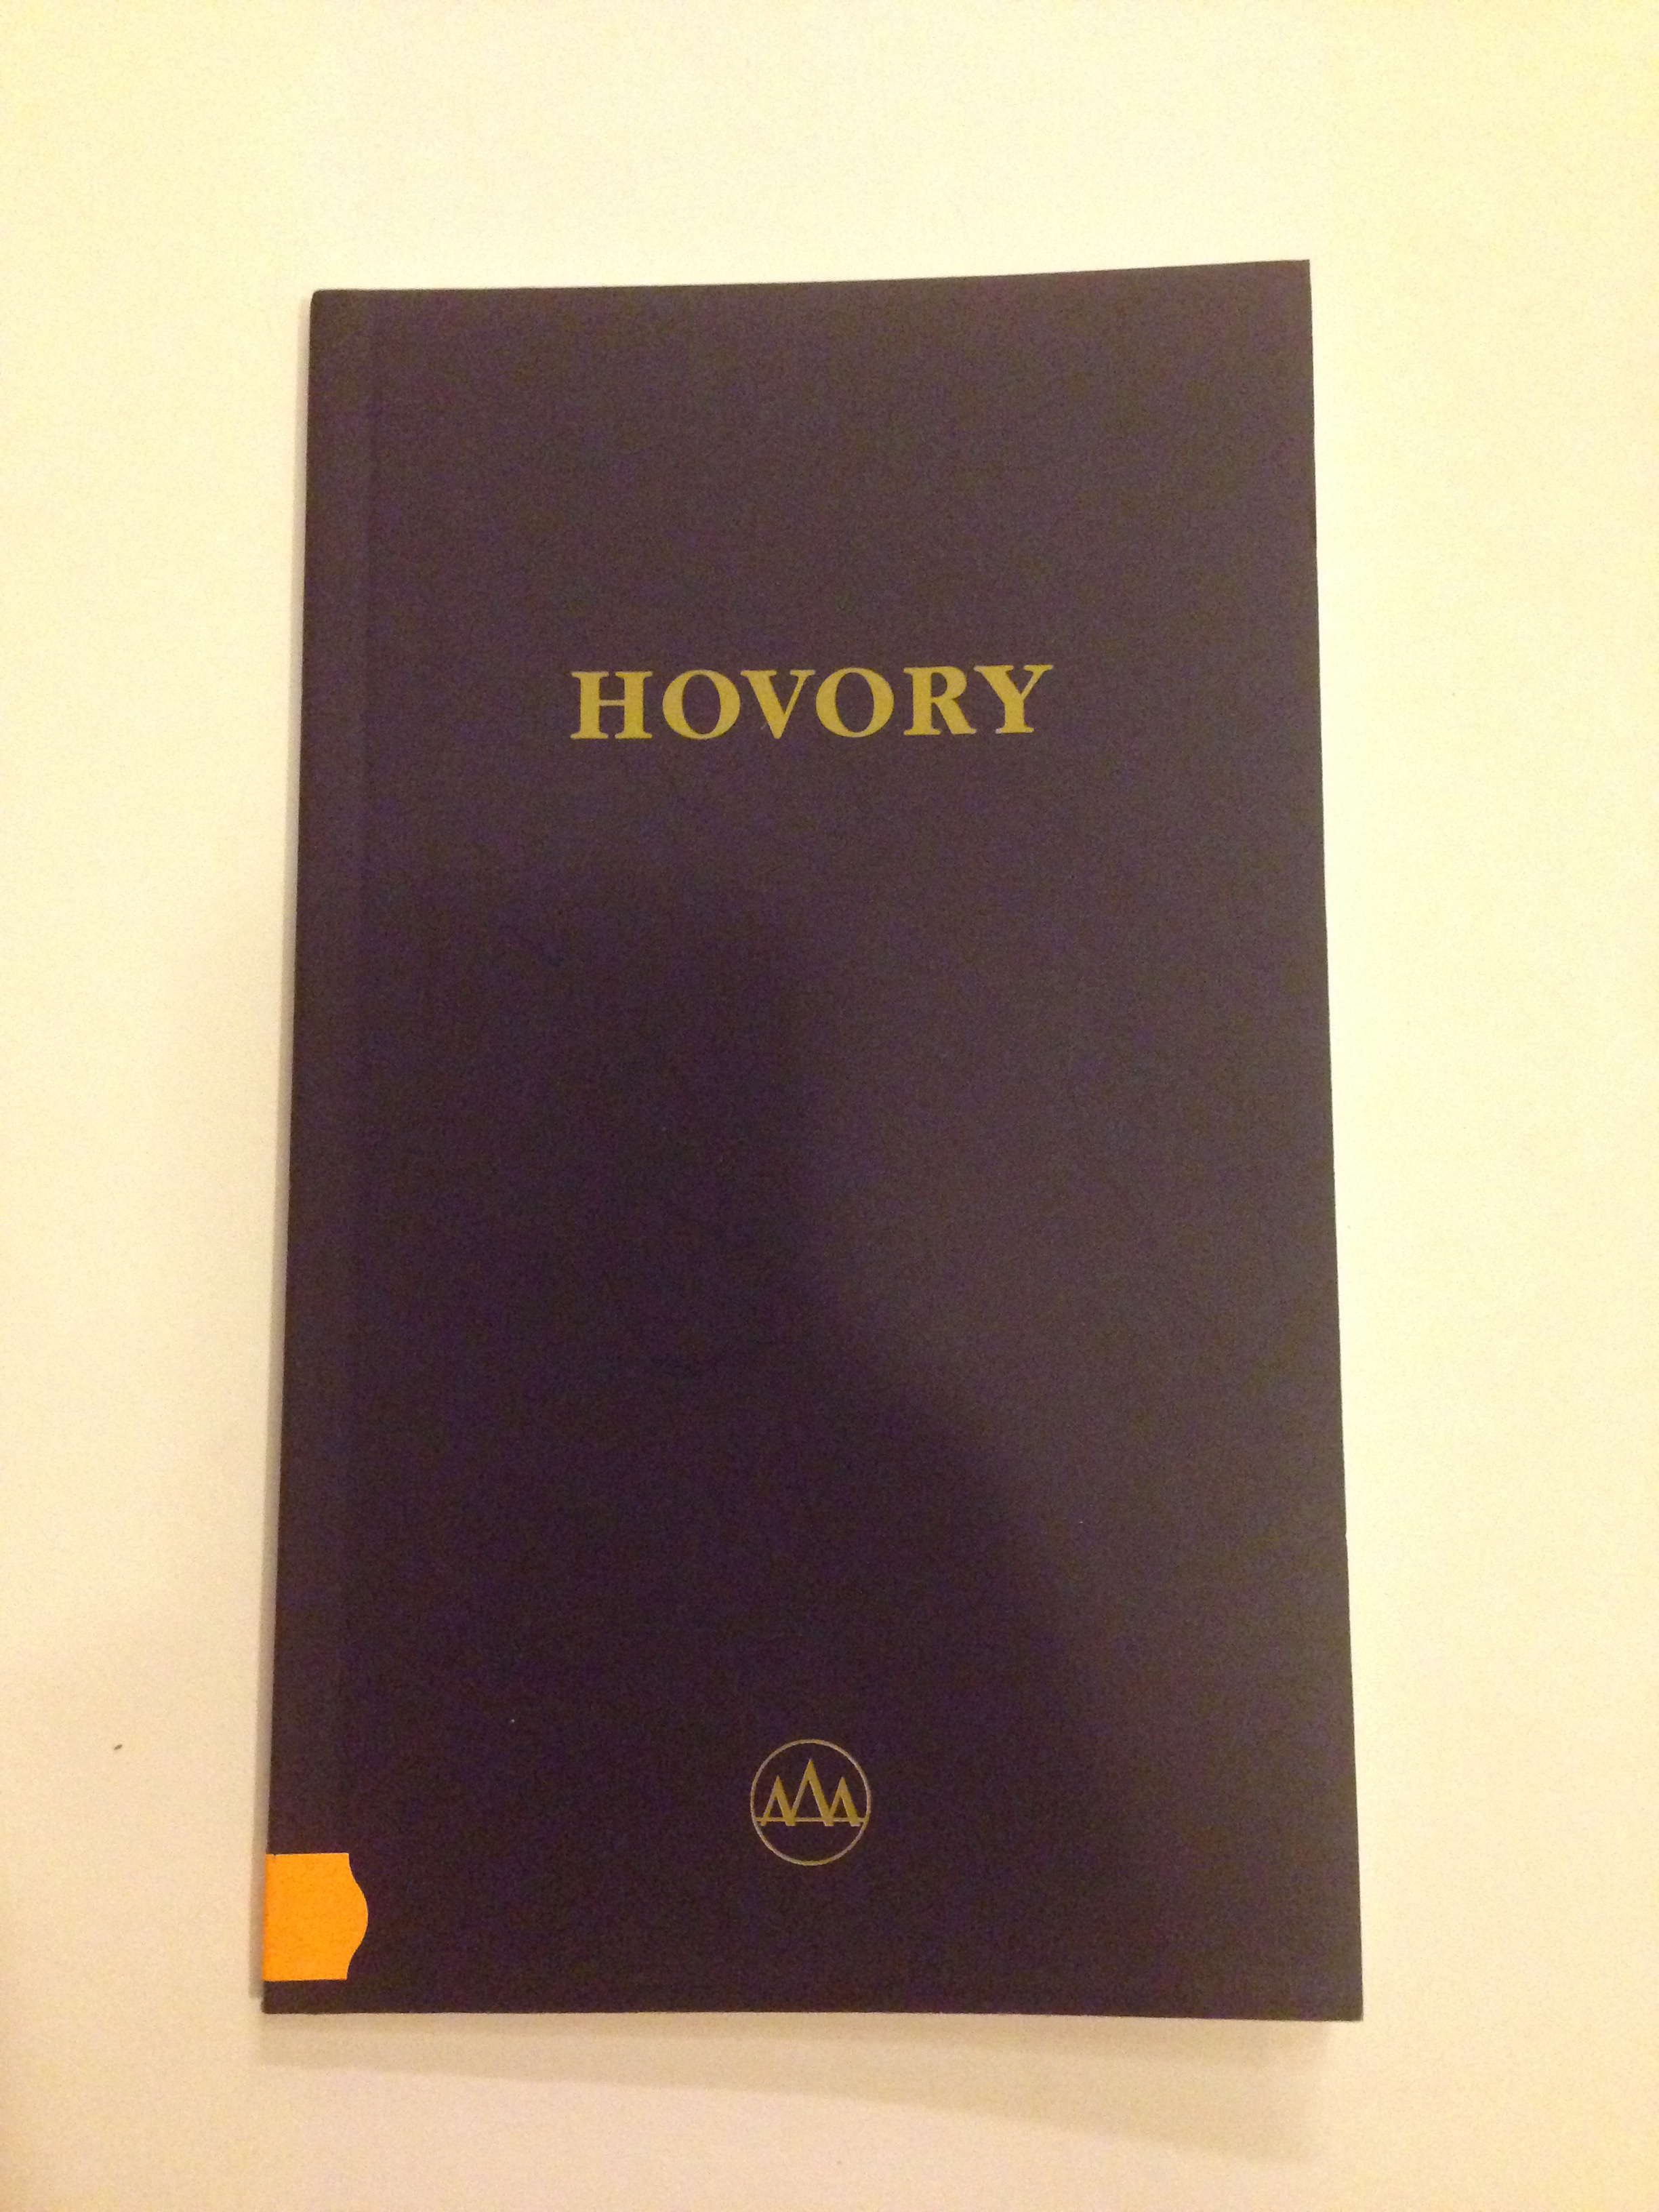 Hovory